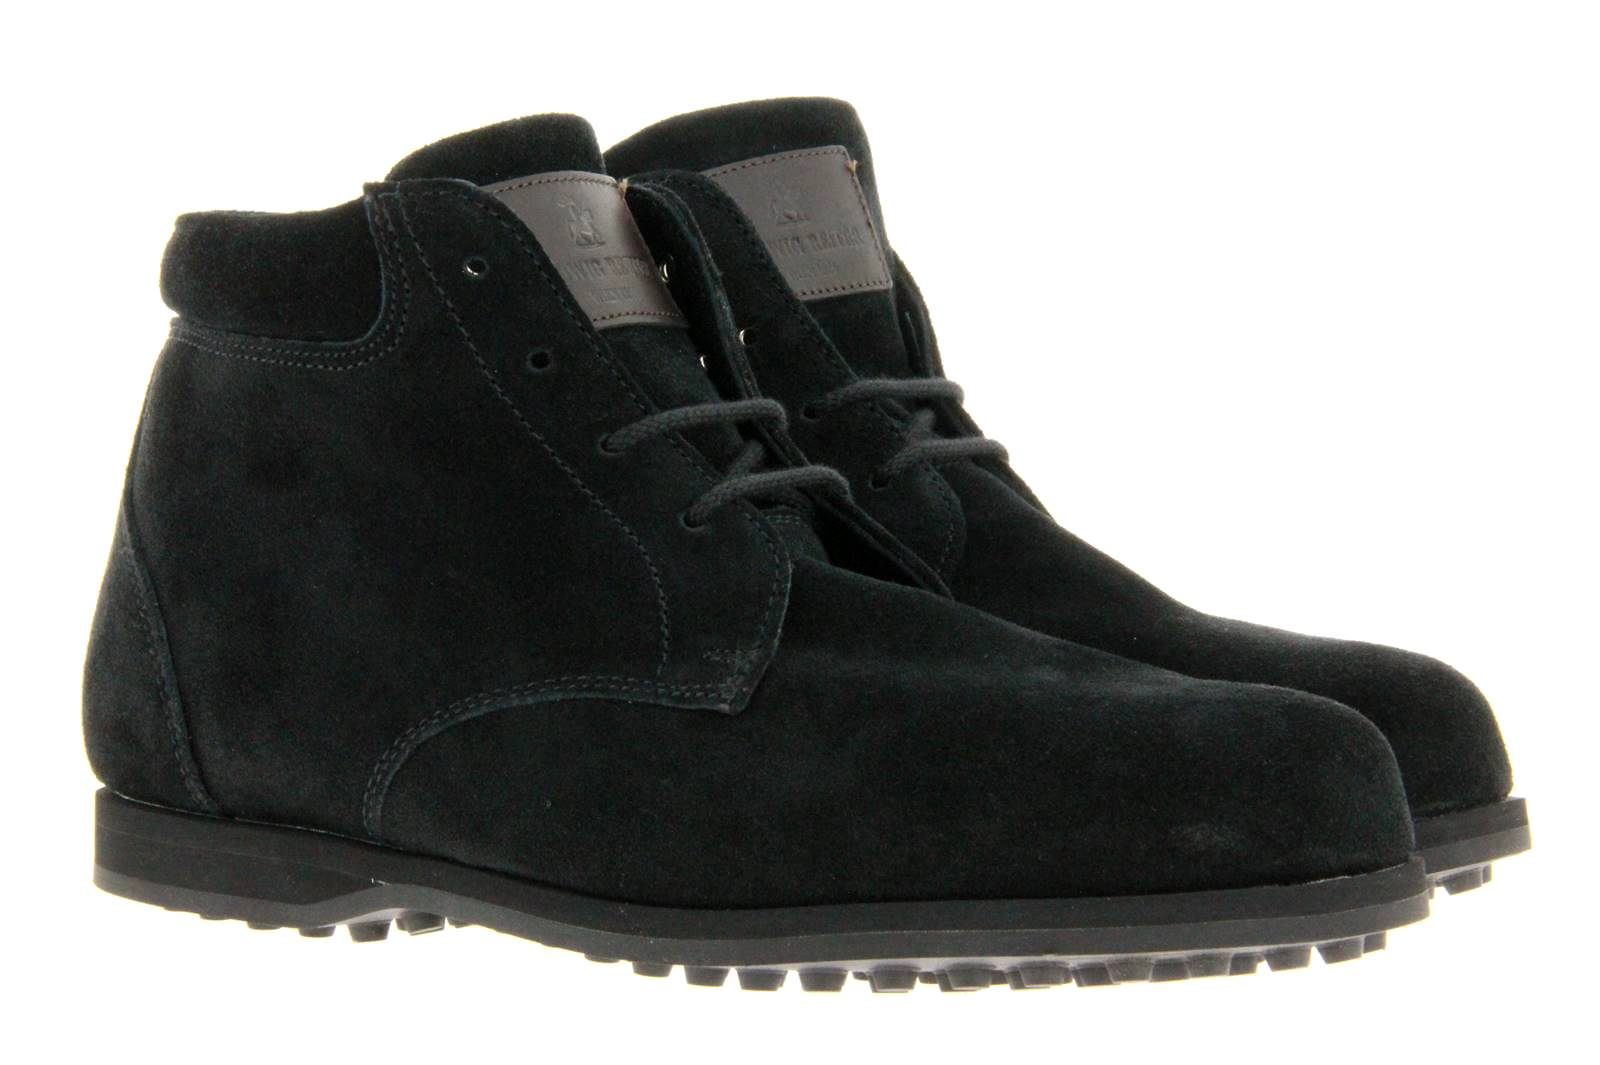 Ludwig Reiter lace-up ankle boots GRINZINGER SUEDE BLACK